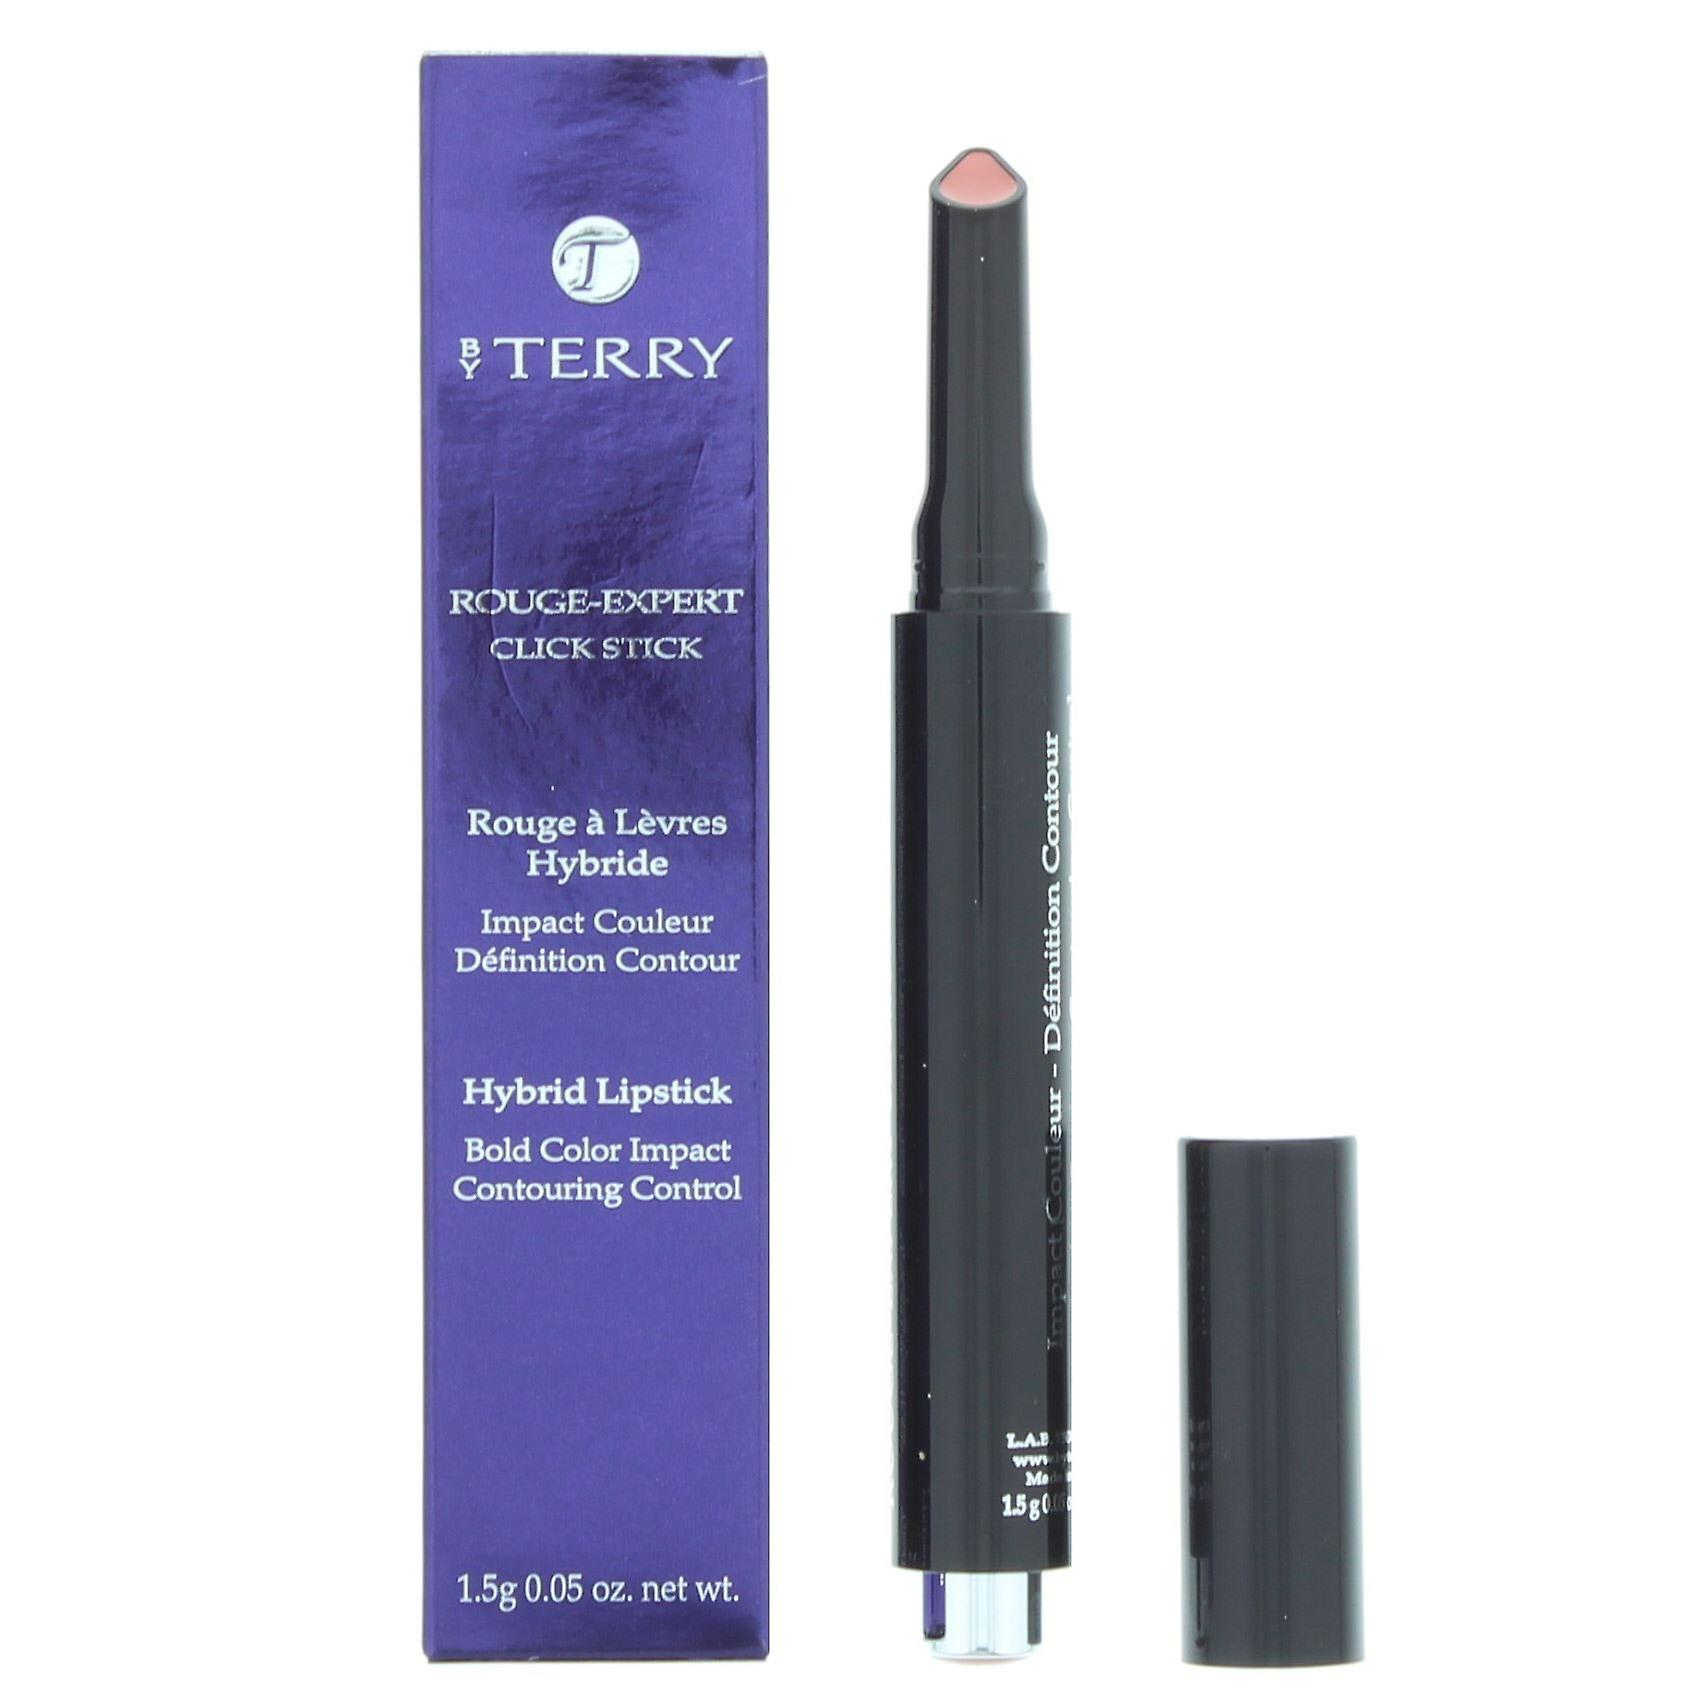 By Terry Rouge Expert Click Stick Hybrid Lipstick - # 12